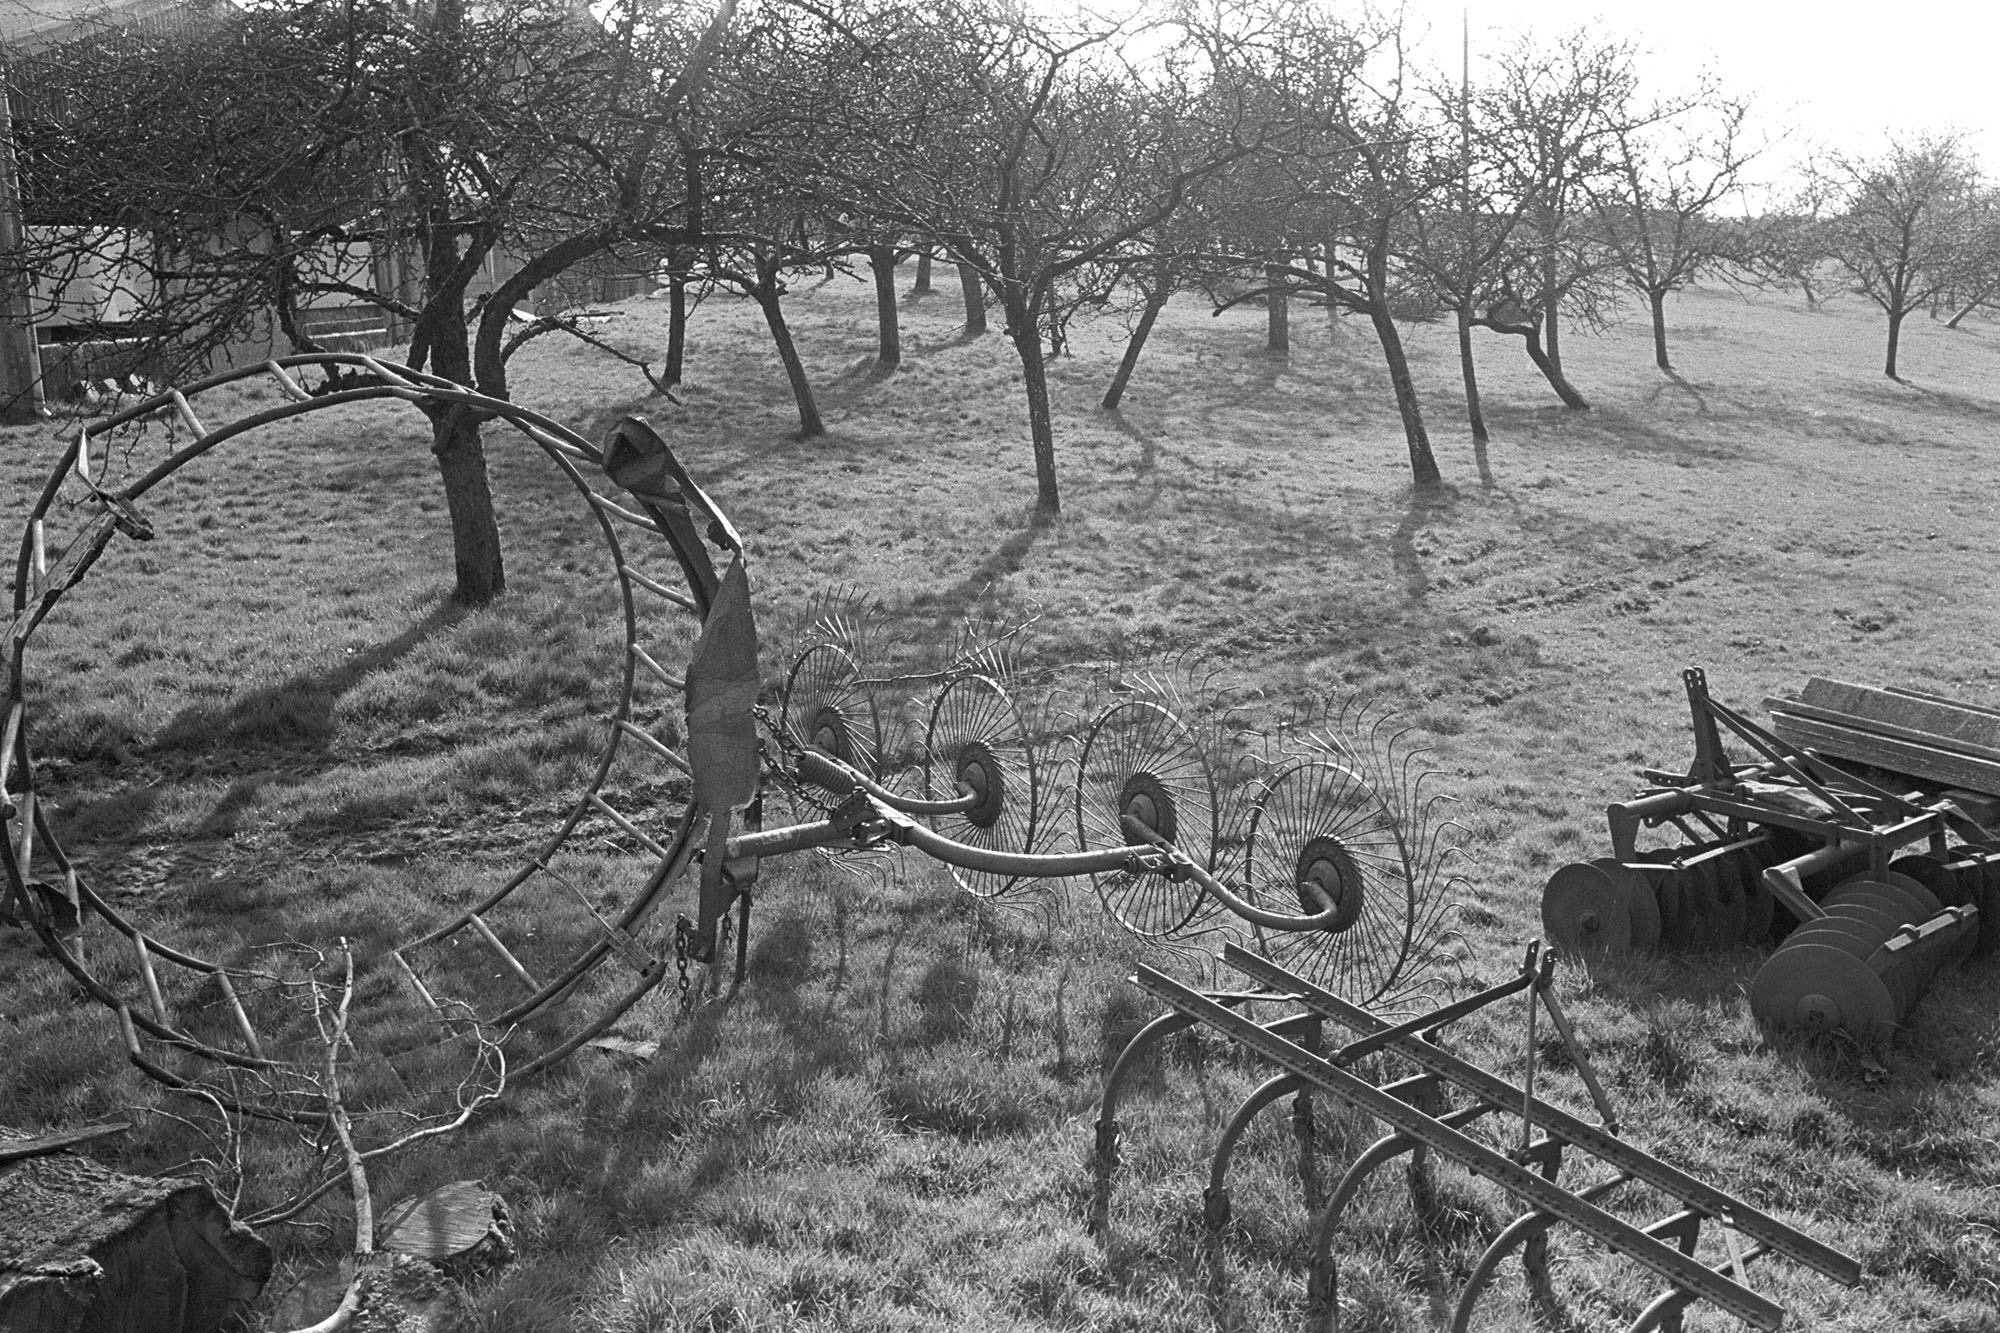 Orchards, farm machinery parked in orchard, whisk, harrow. <br /> [Farm machinery, including a whisk and harrow, parked in an orchard at Warkleigh, Satterleigh. Fruit trees are visible in the background.]